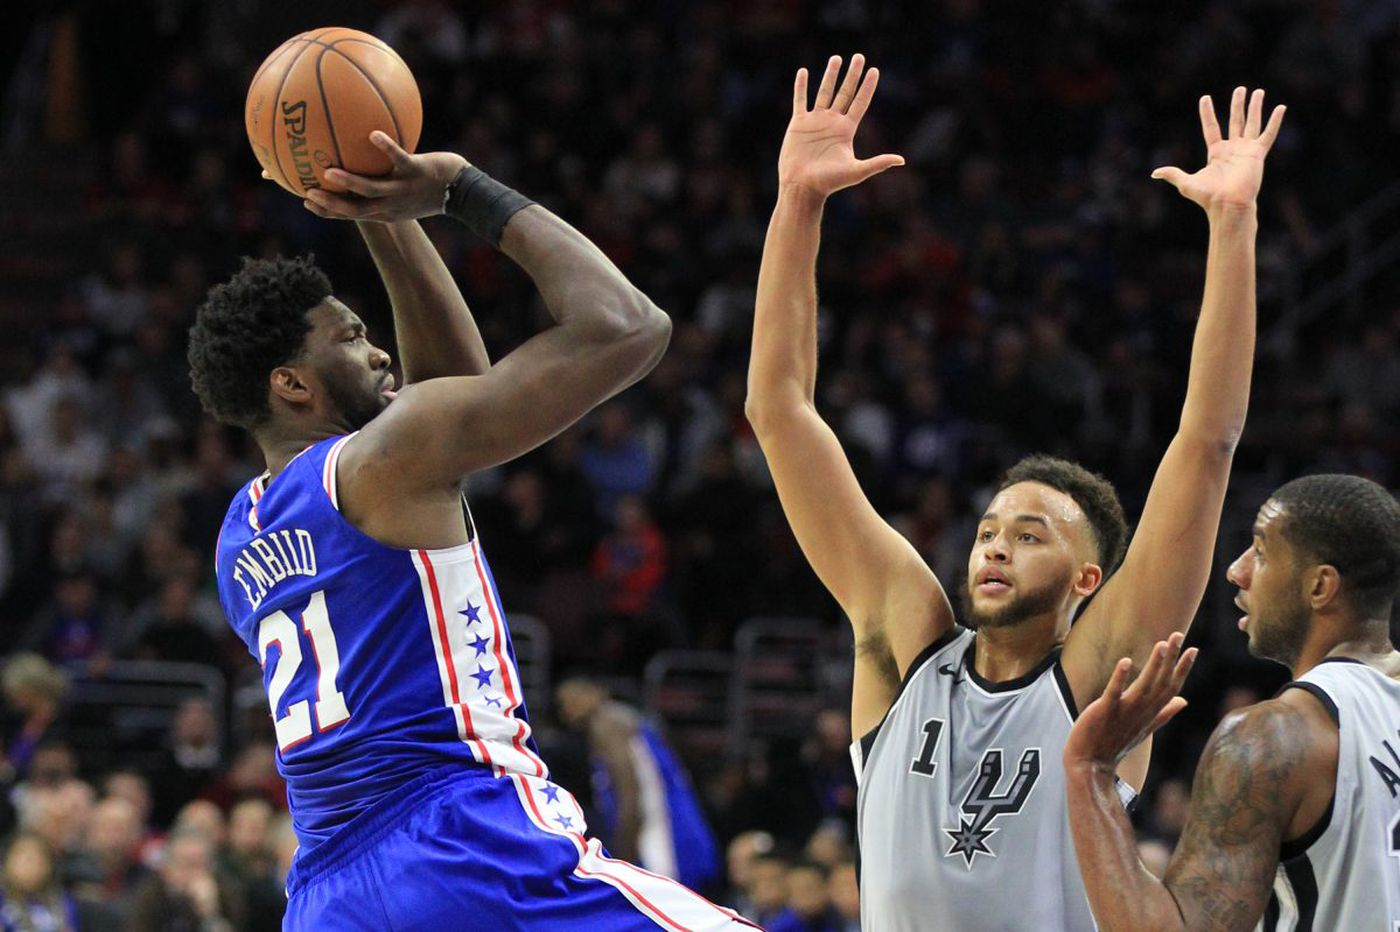 Joel Embiid plays with sprained hand, leads Sixers to 112-106 victory over undermanned Spurs